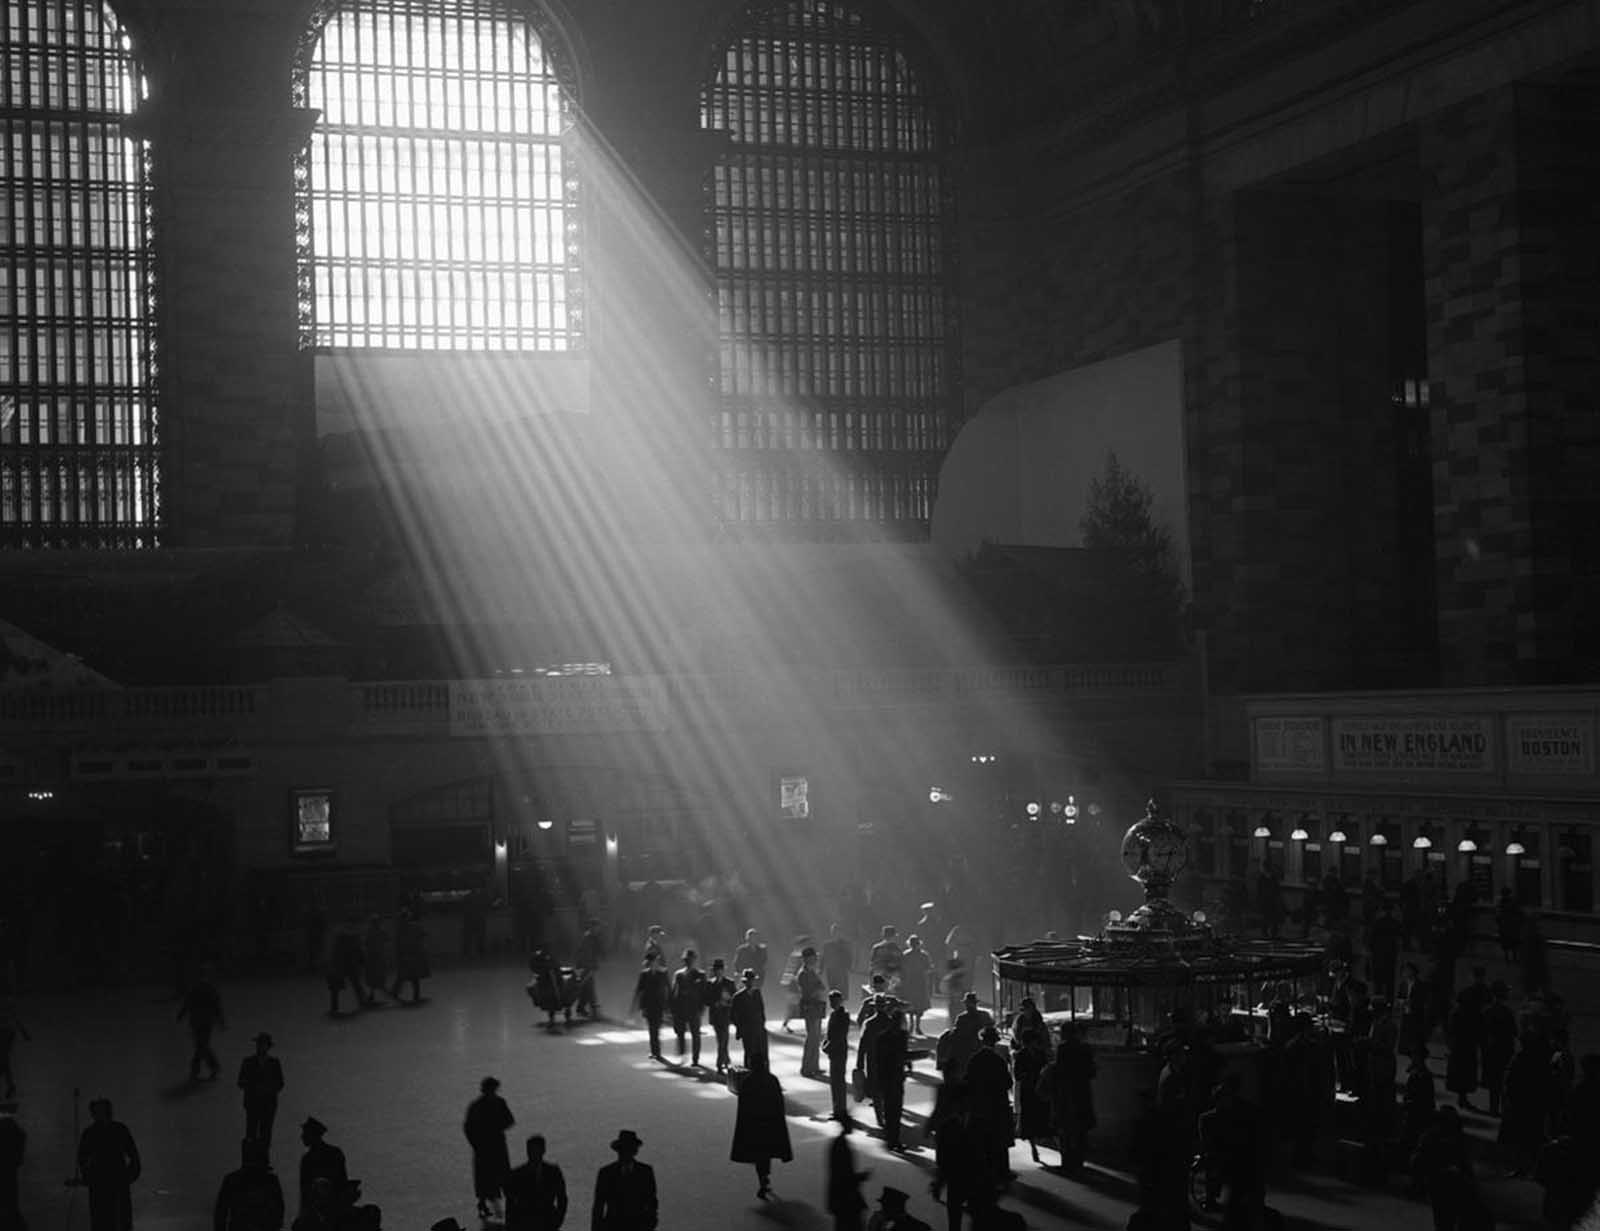 The interior of Grand Central Station, with the sun streaming in through the window.